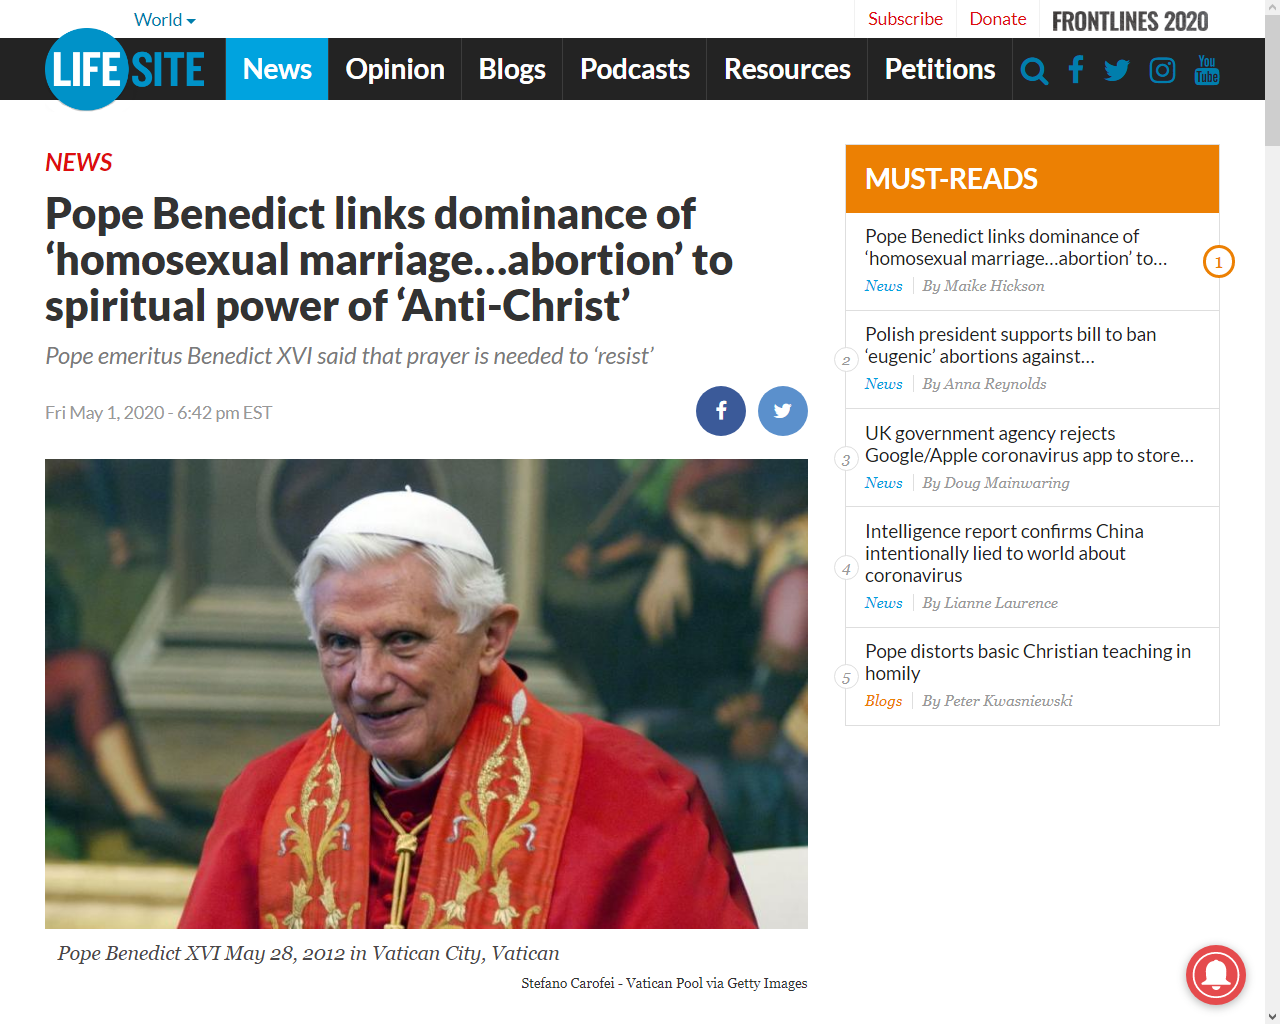 https://www.lifesitenews.com/news/pope-benedict-links-dominance-of-homosexual-marriage...abortion-to-spiritual-power-of-anti-christ